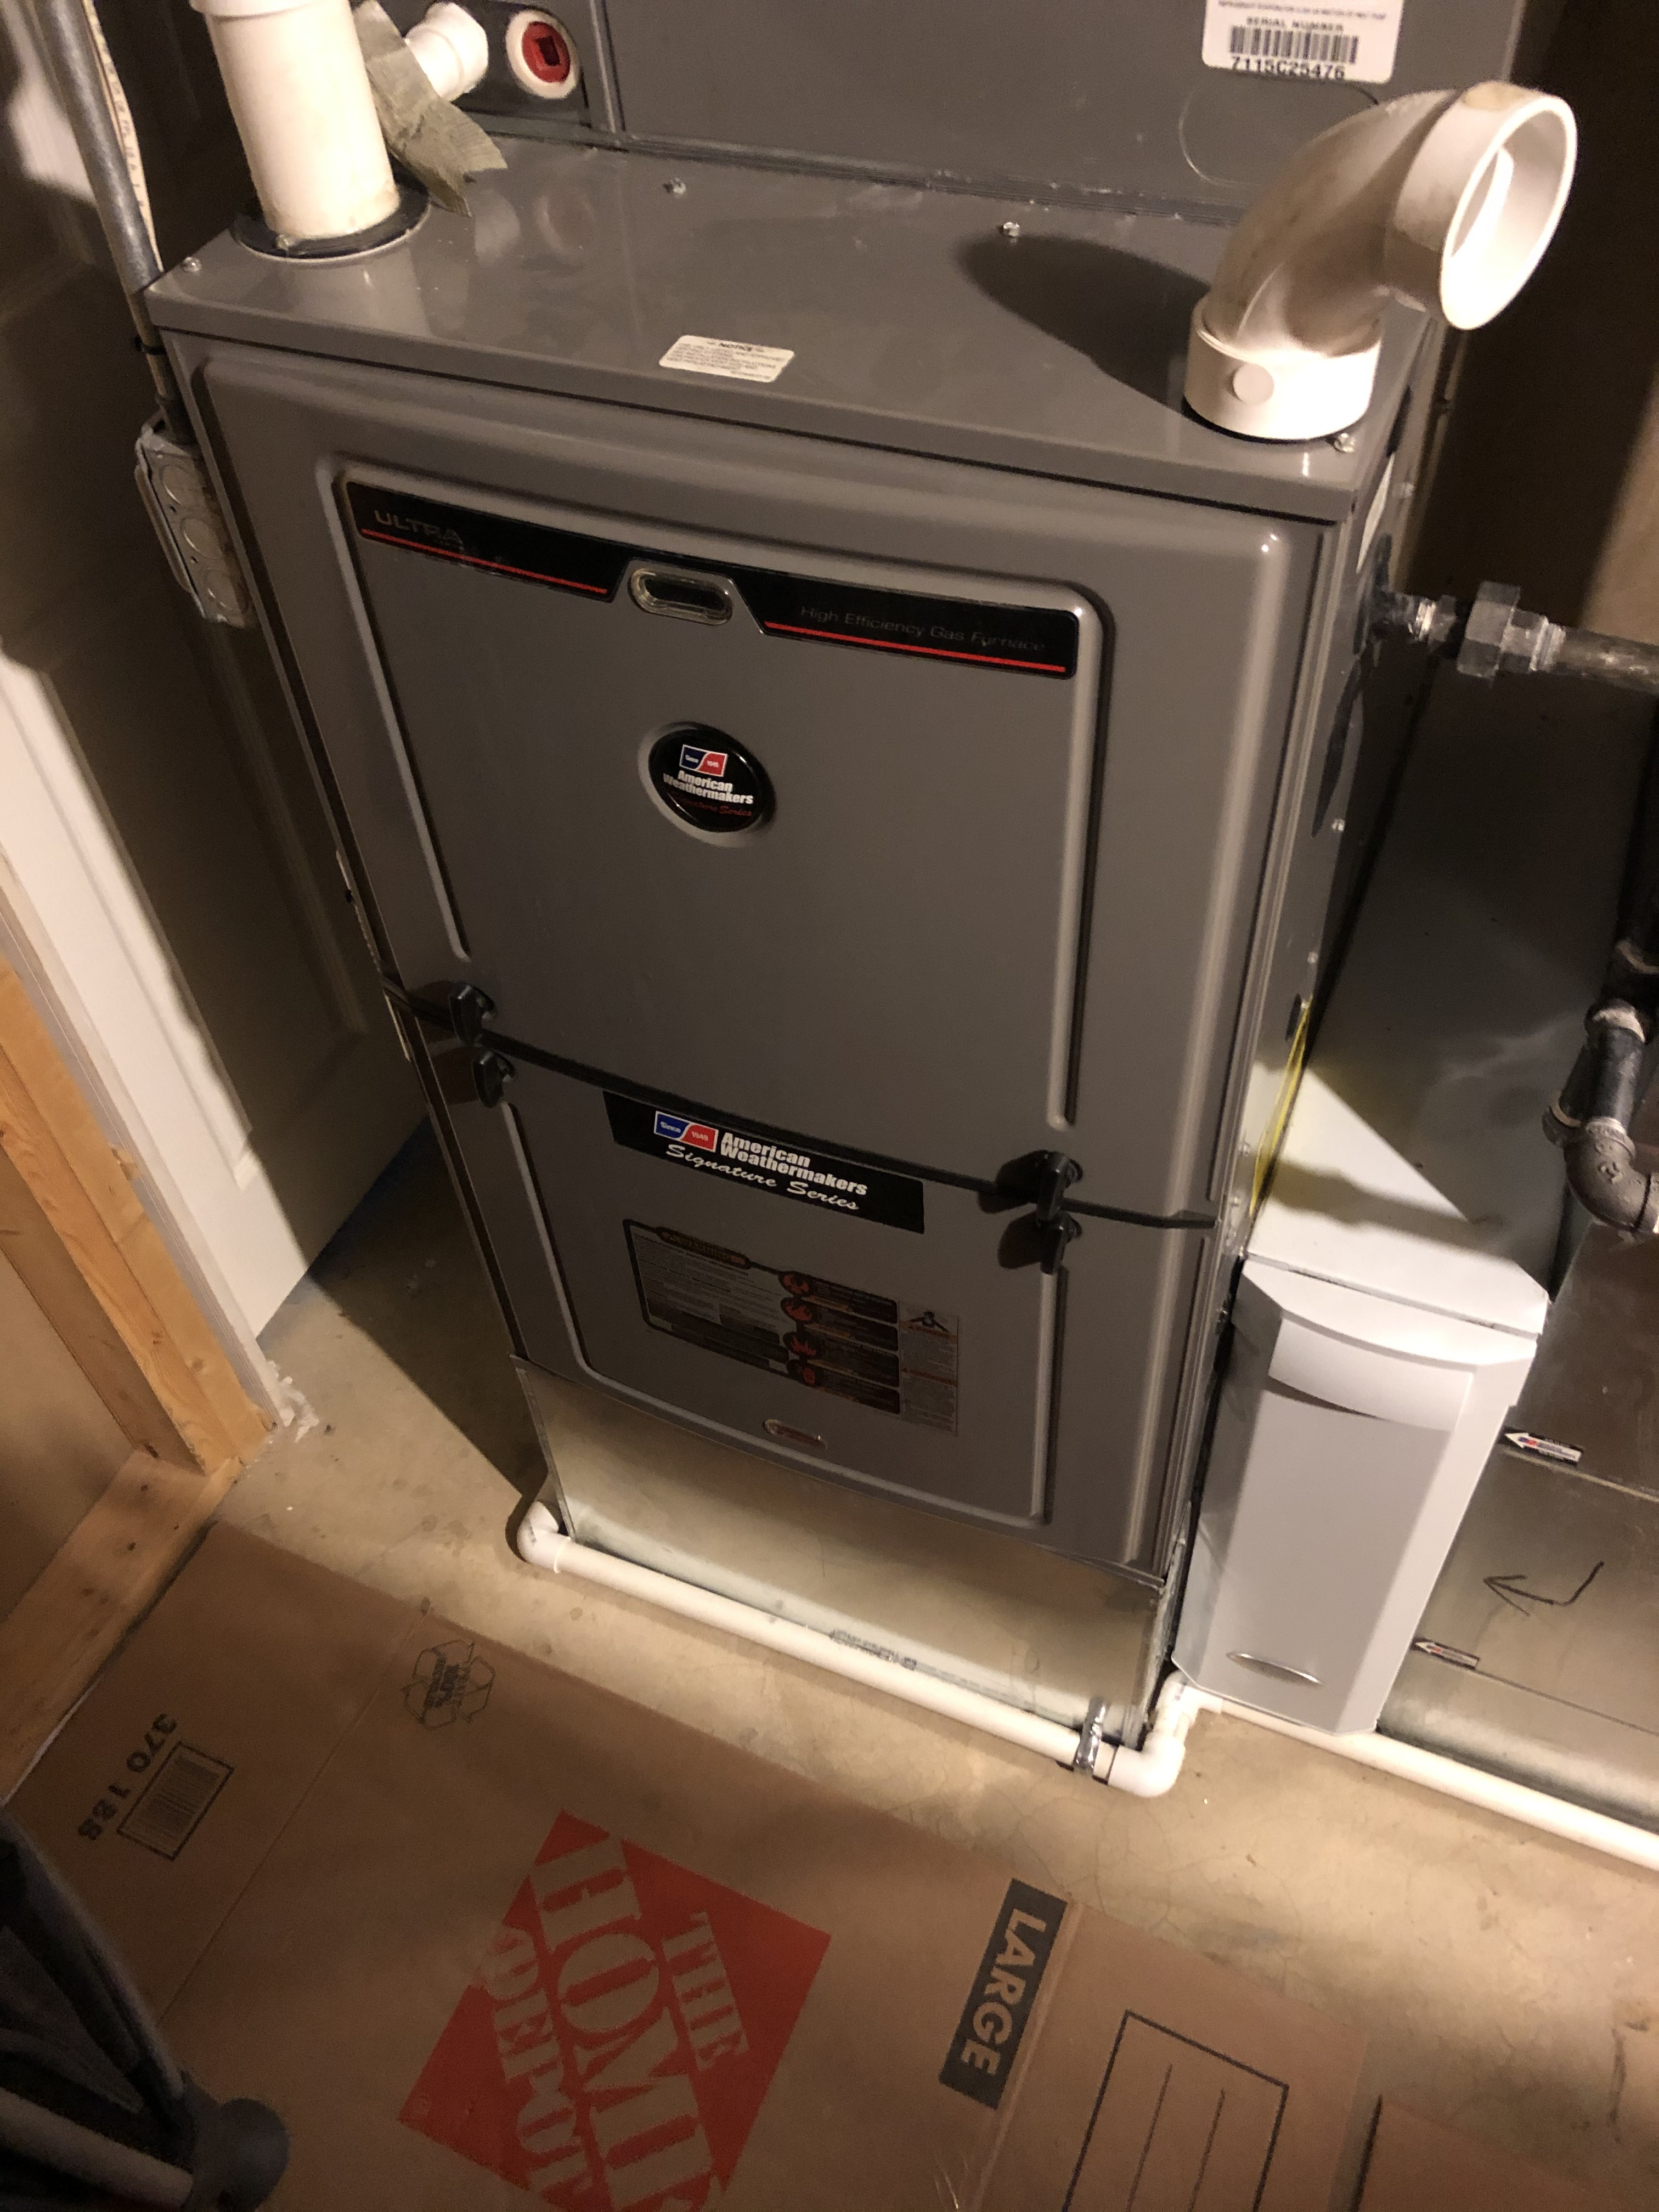 Make sure your Ruud furnace is running right this winter.